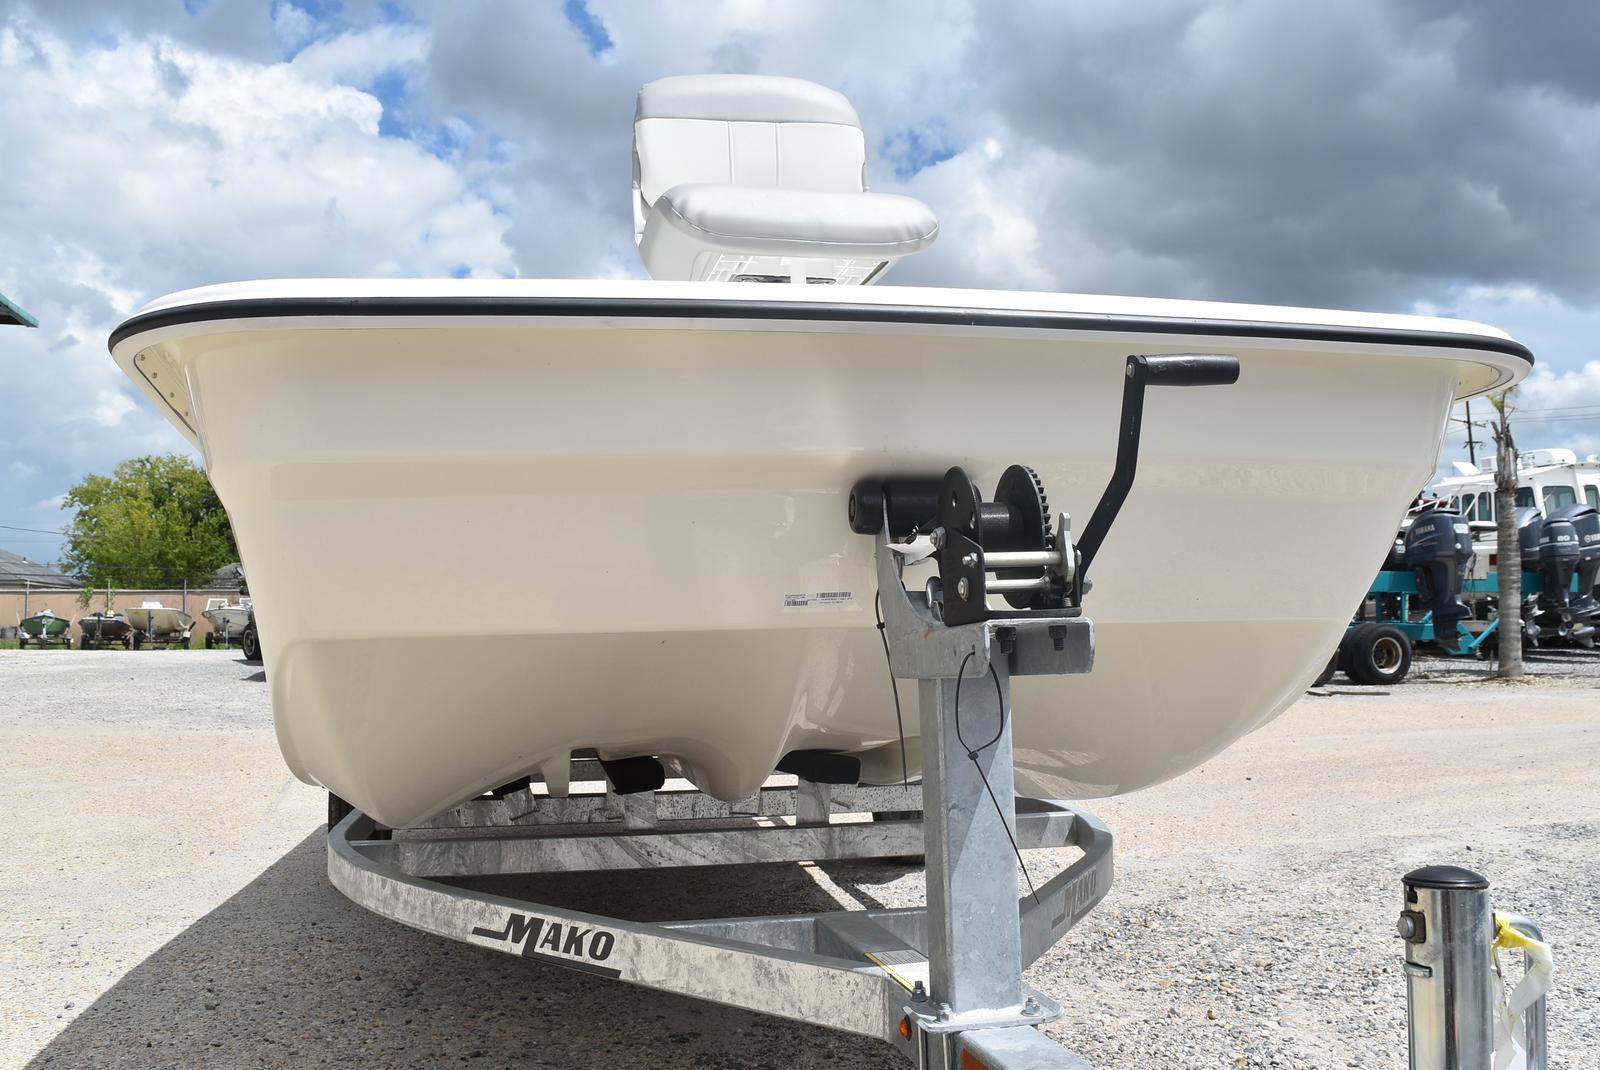 2020 Mako boat for sale, model of the boat is Pro Skiff 17, 75 ELPT & Image # 379 of 702